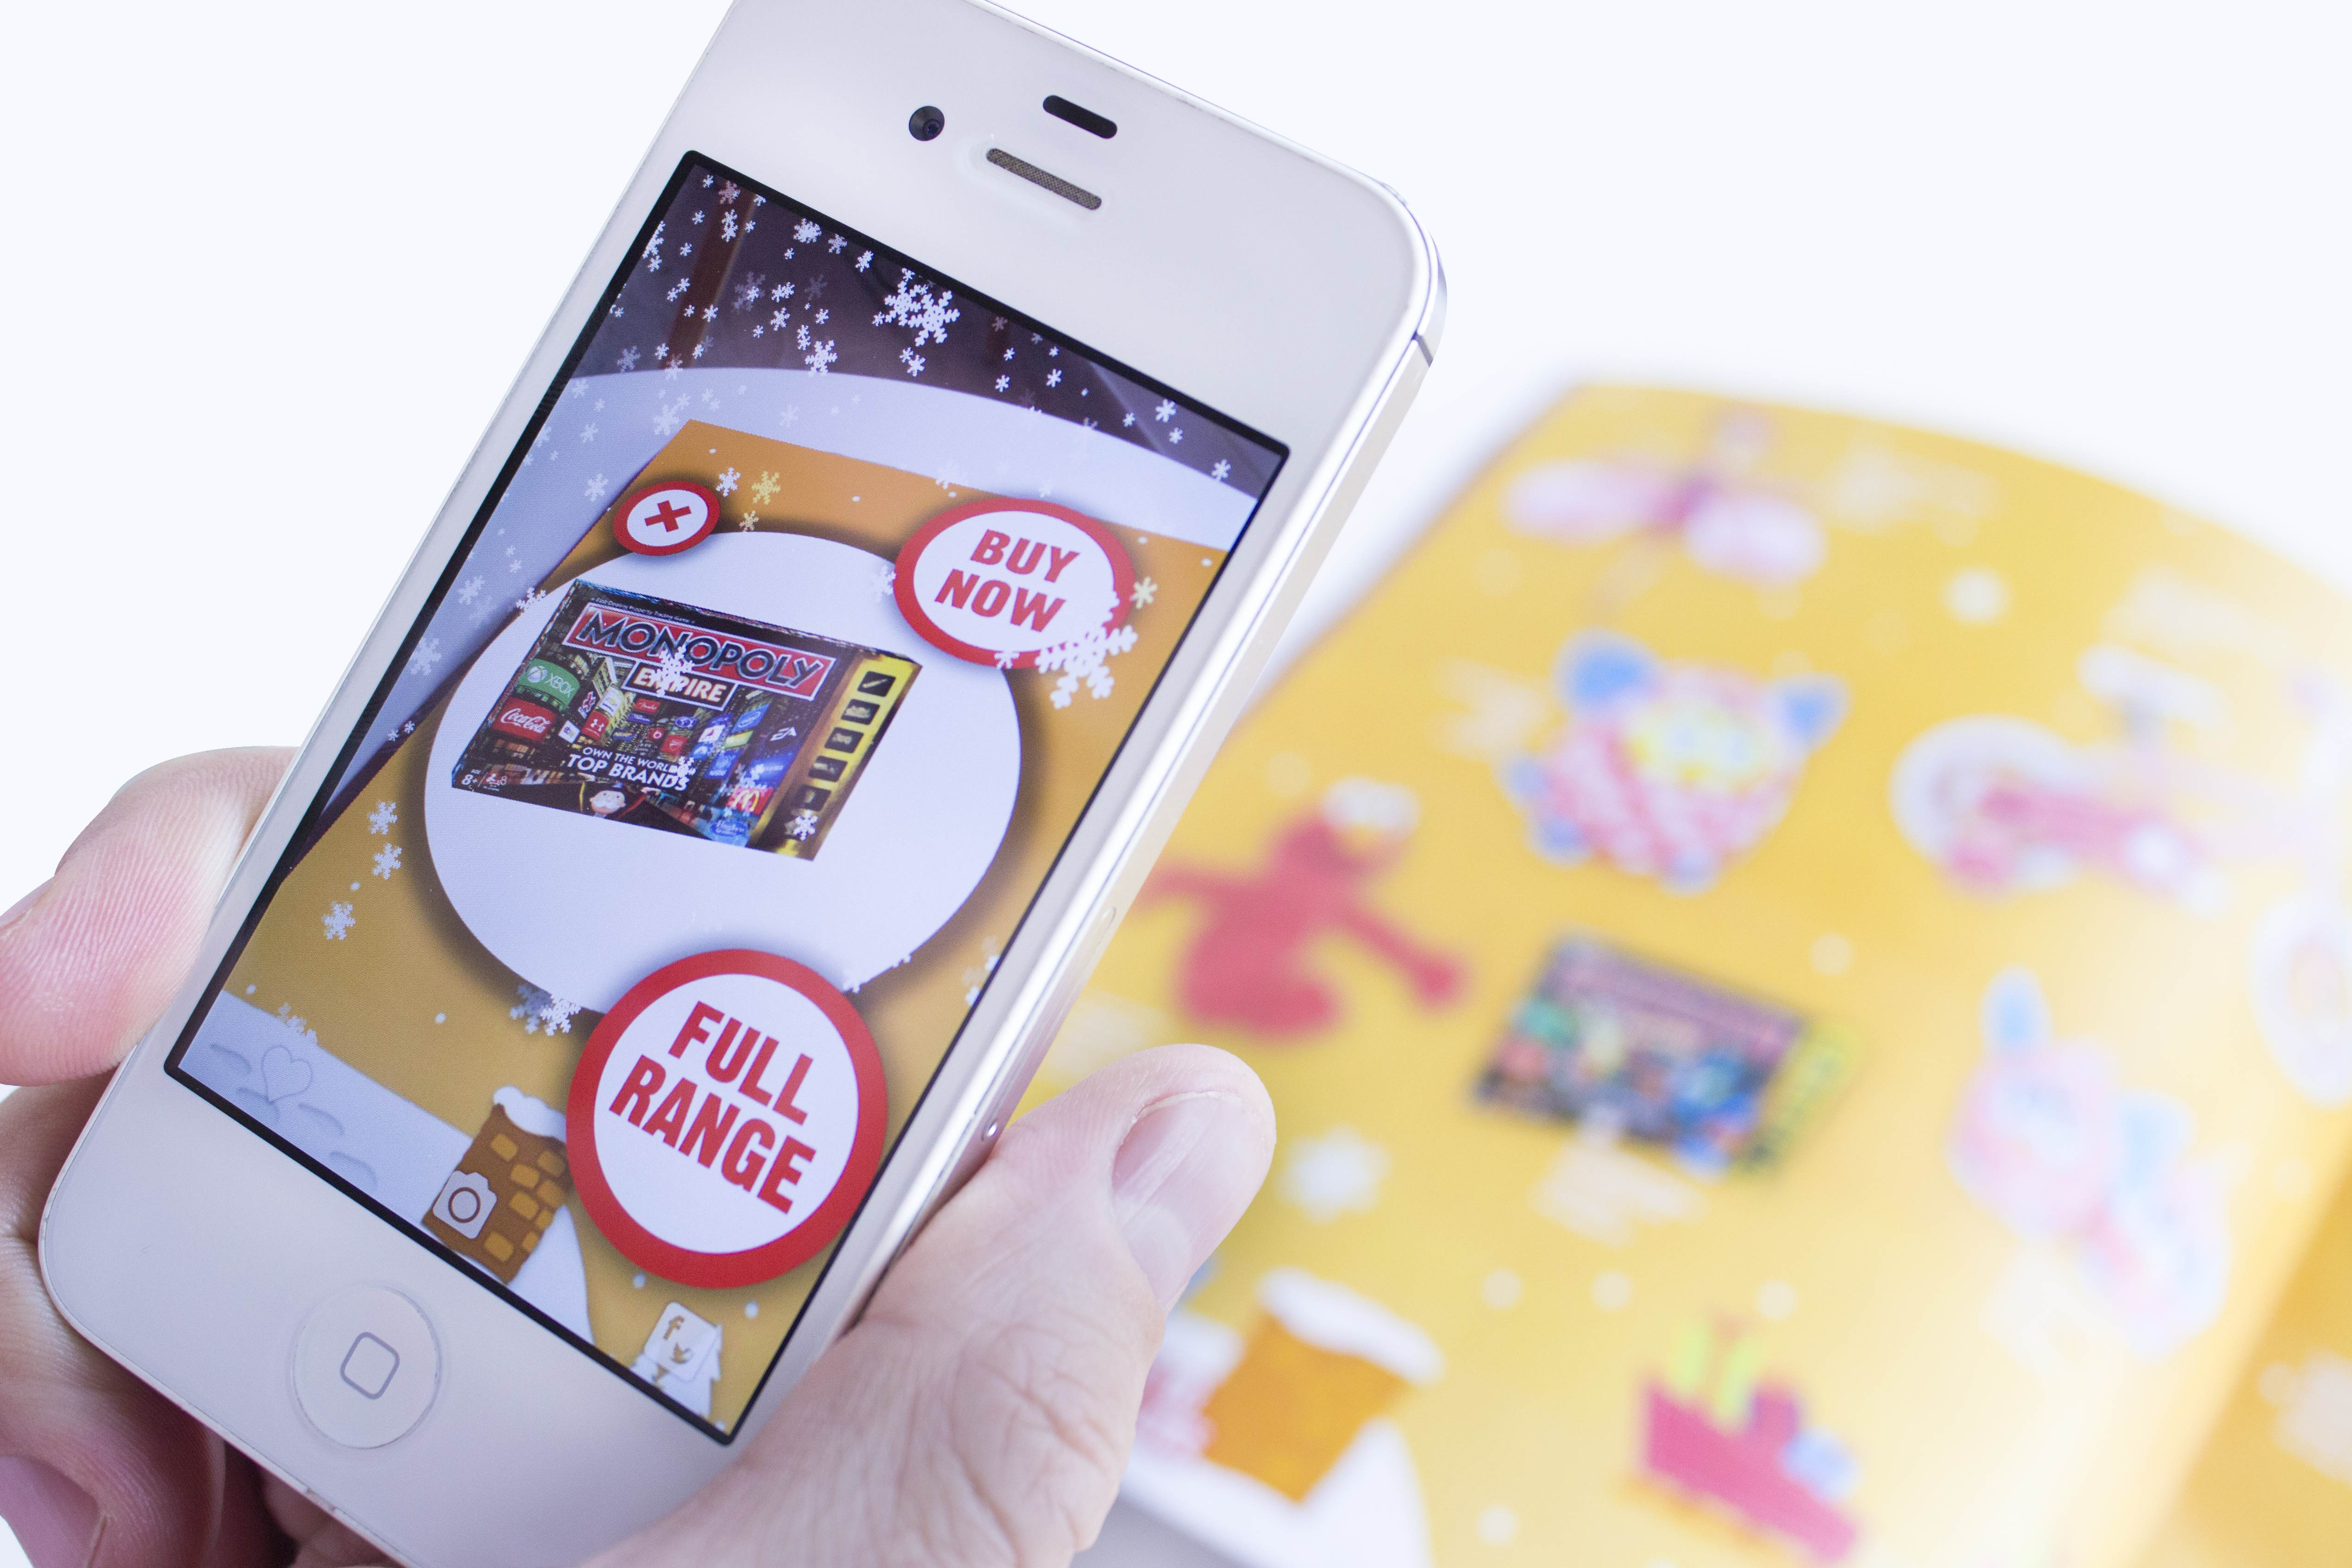 Blippar to Acquire Layar